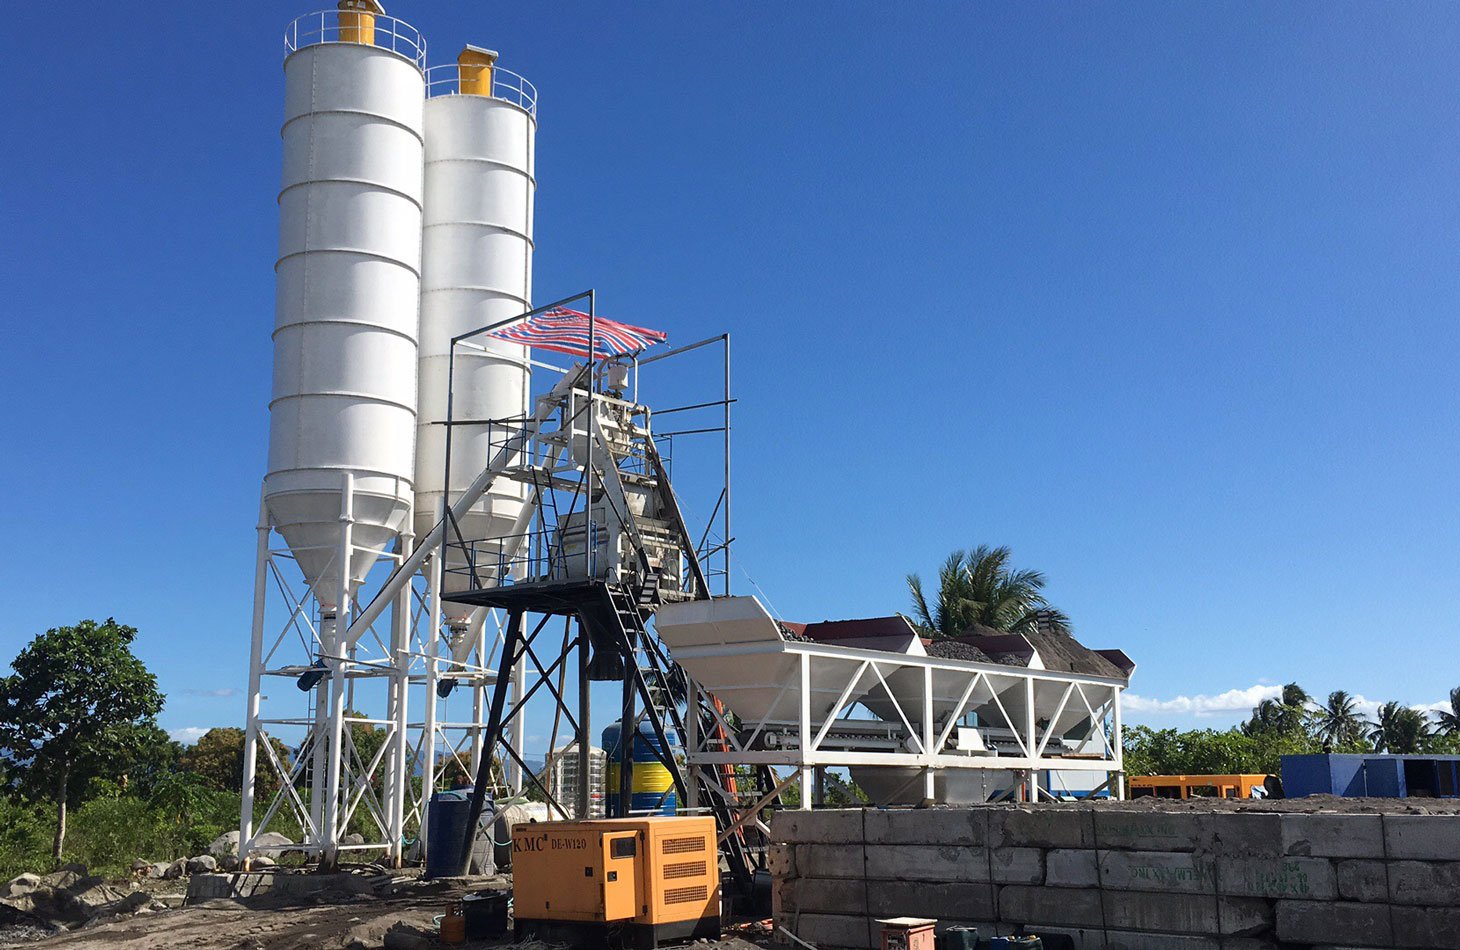 AJ-50 batching plant in the Philippines